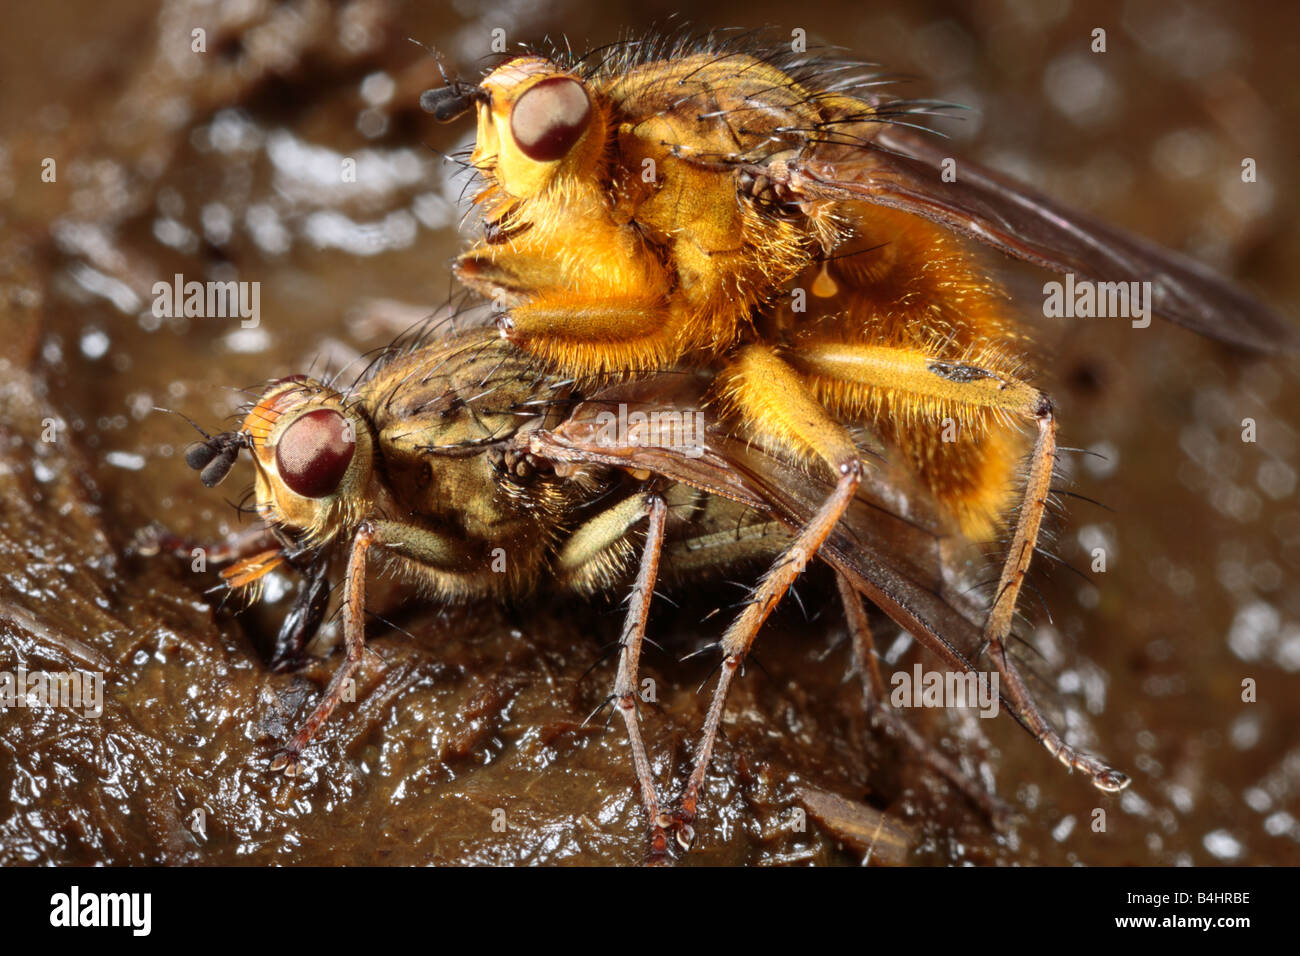 Yellow Dung Flies (Scathophaga stercoraria) the male guarding an egg laying female. Powys, Wales, UK. - Stock Image